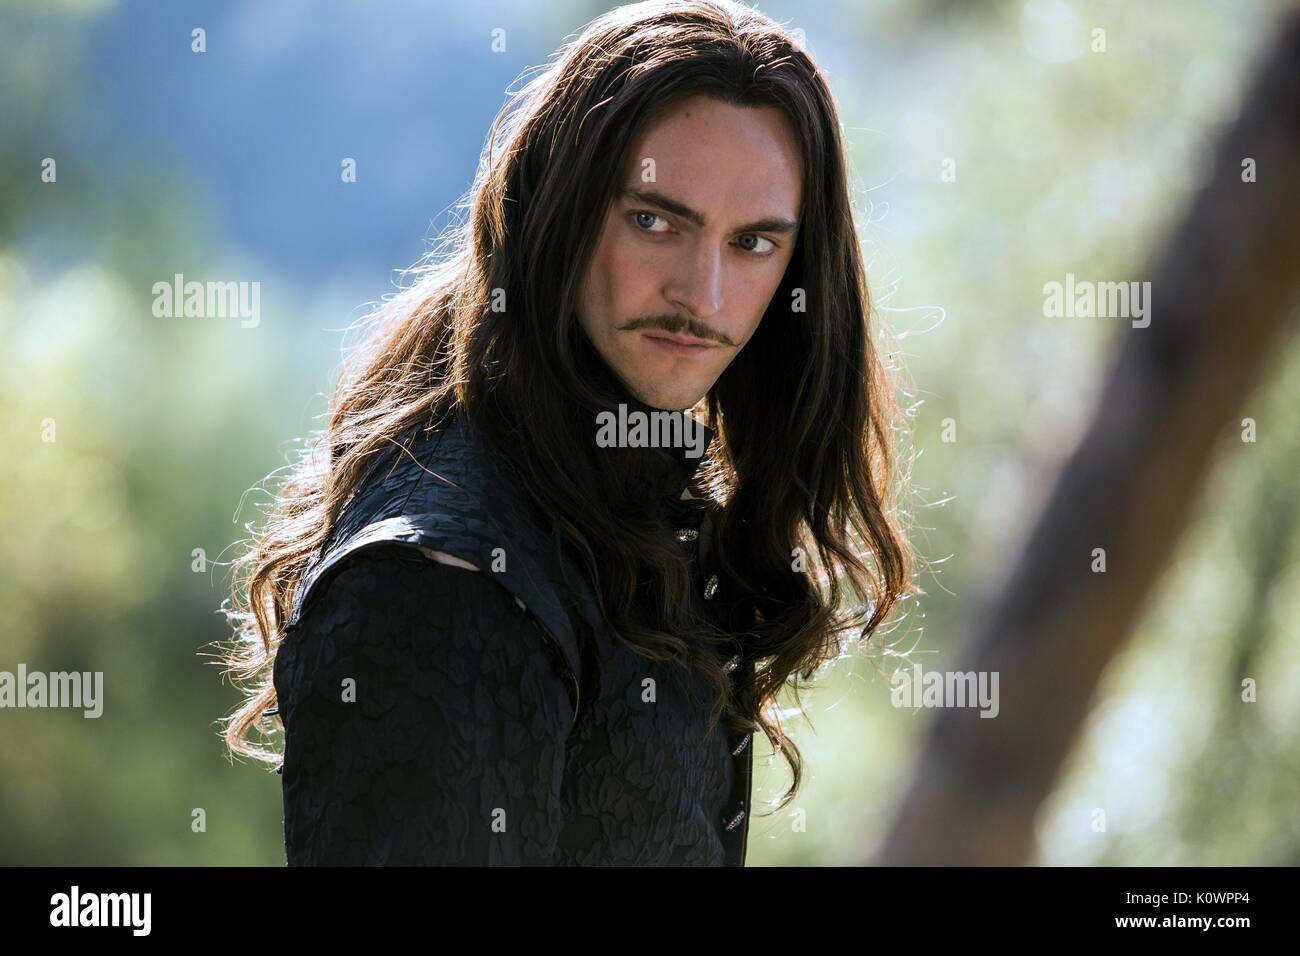 George Blagden Stock Photos & George Blagden Stock Images - Alamy